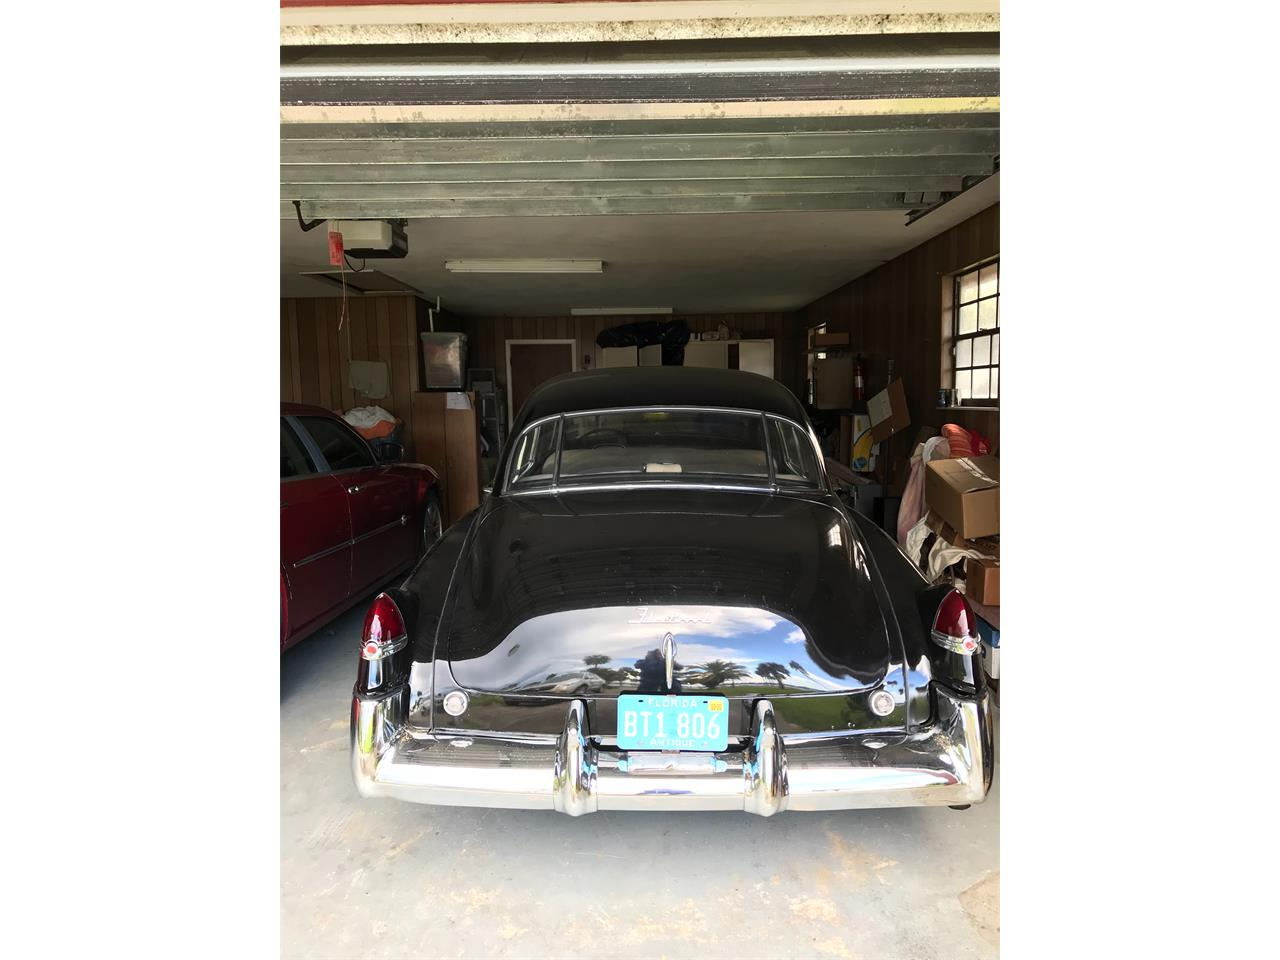 1949 Cadillac 4-Dr Sedan for sale in Land O Lakes, FL – photo 15